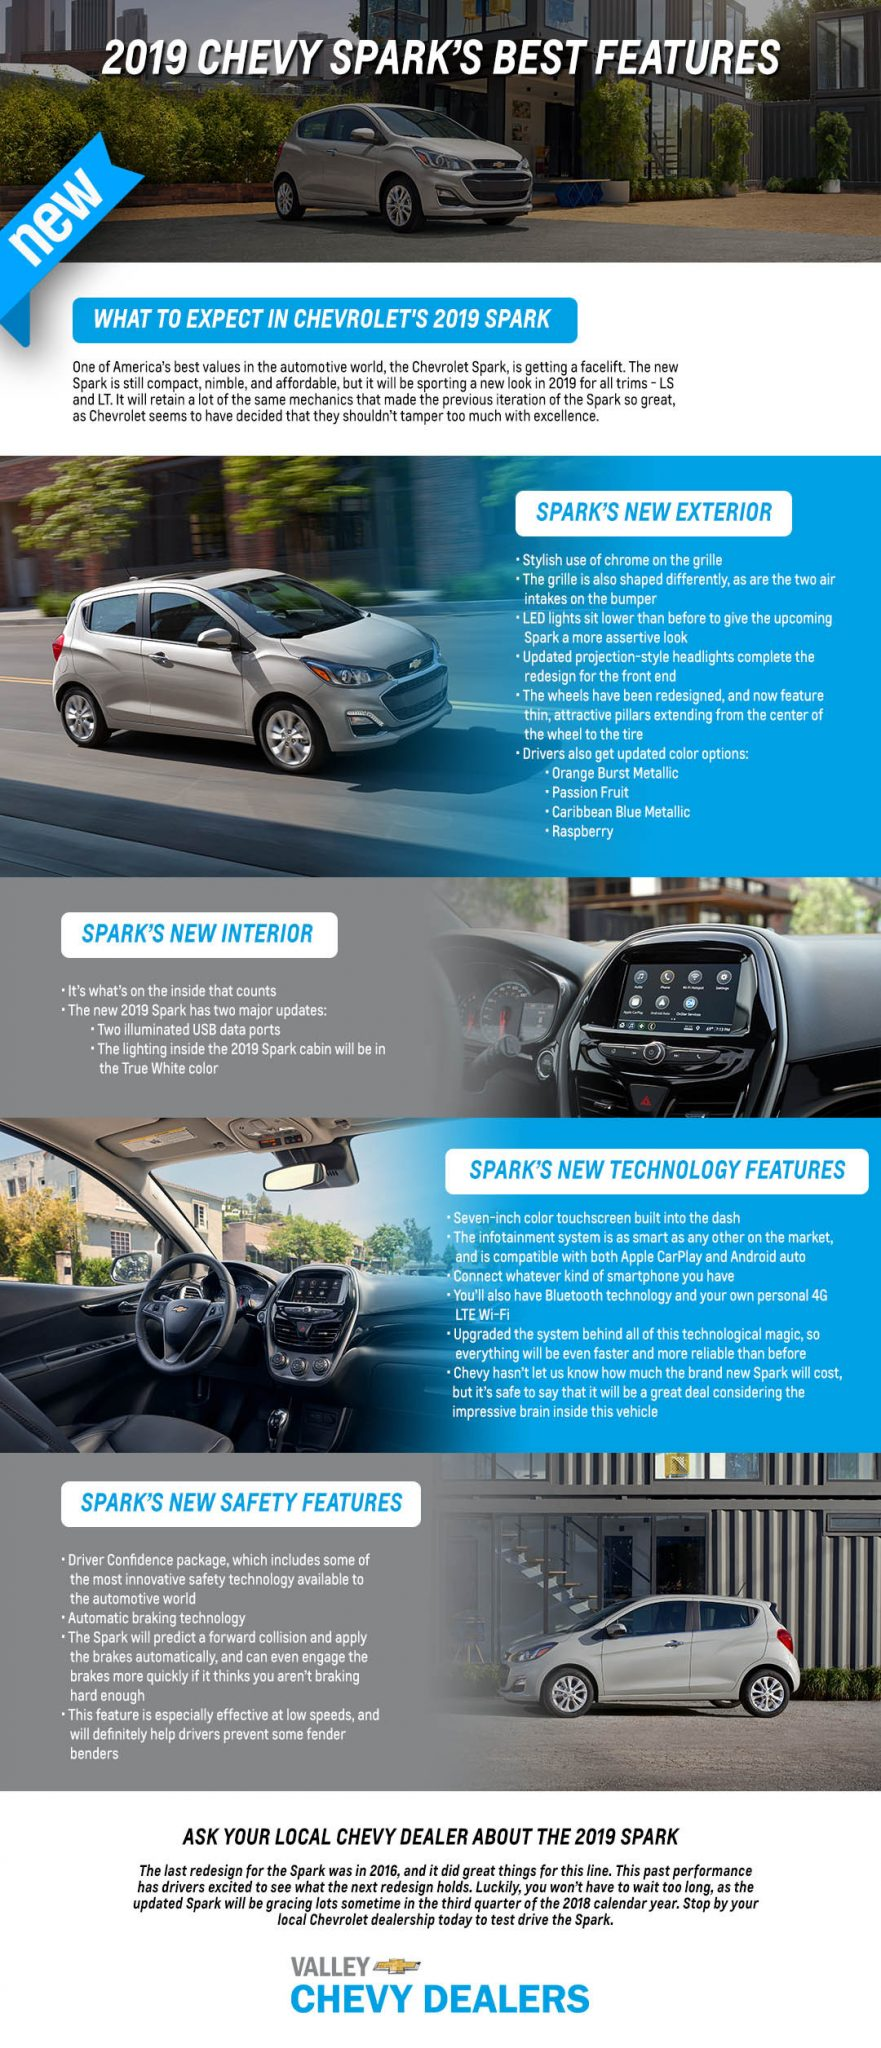 2019 Chevy Spark's Best Features